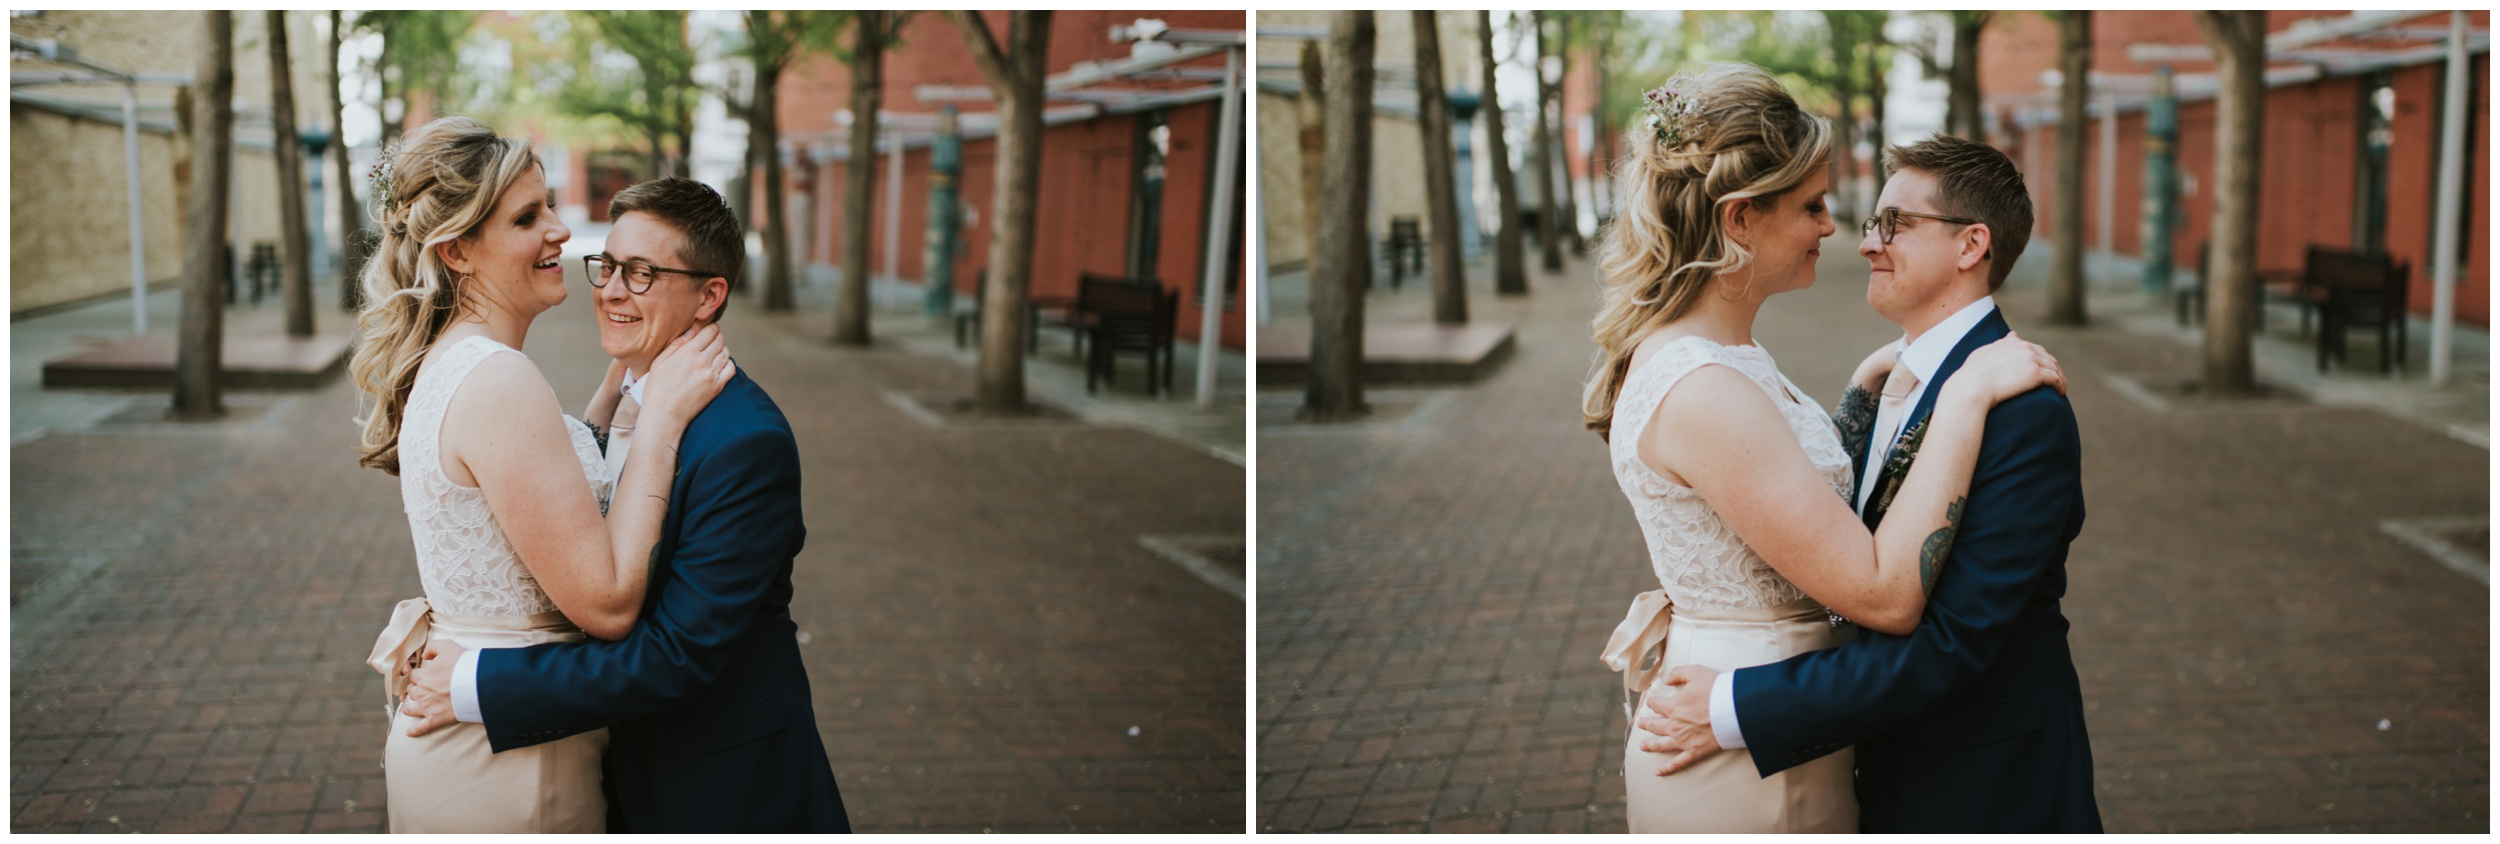 Century Plaza Roanoke Virginia. Wedding Portraits  | www.riversandroadsphotography.com